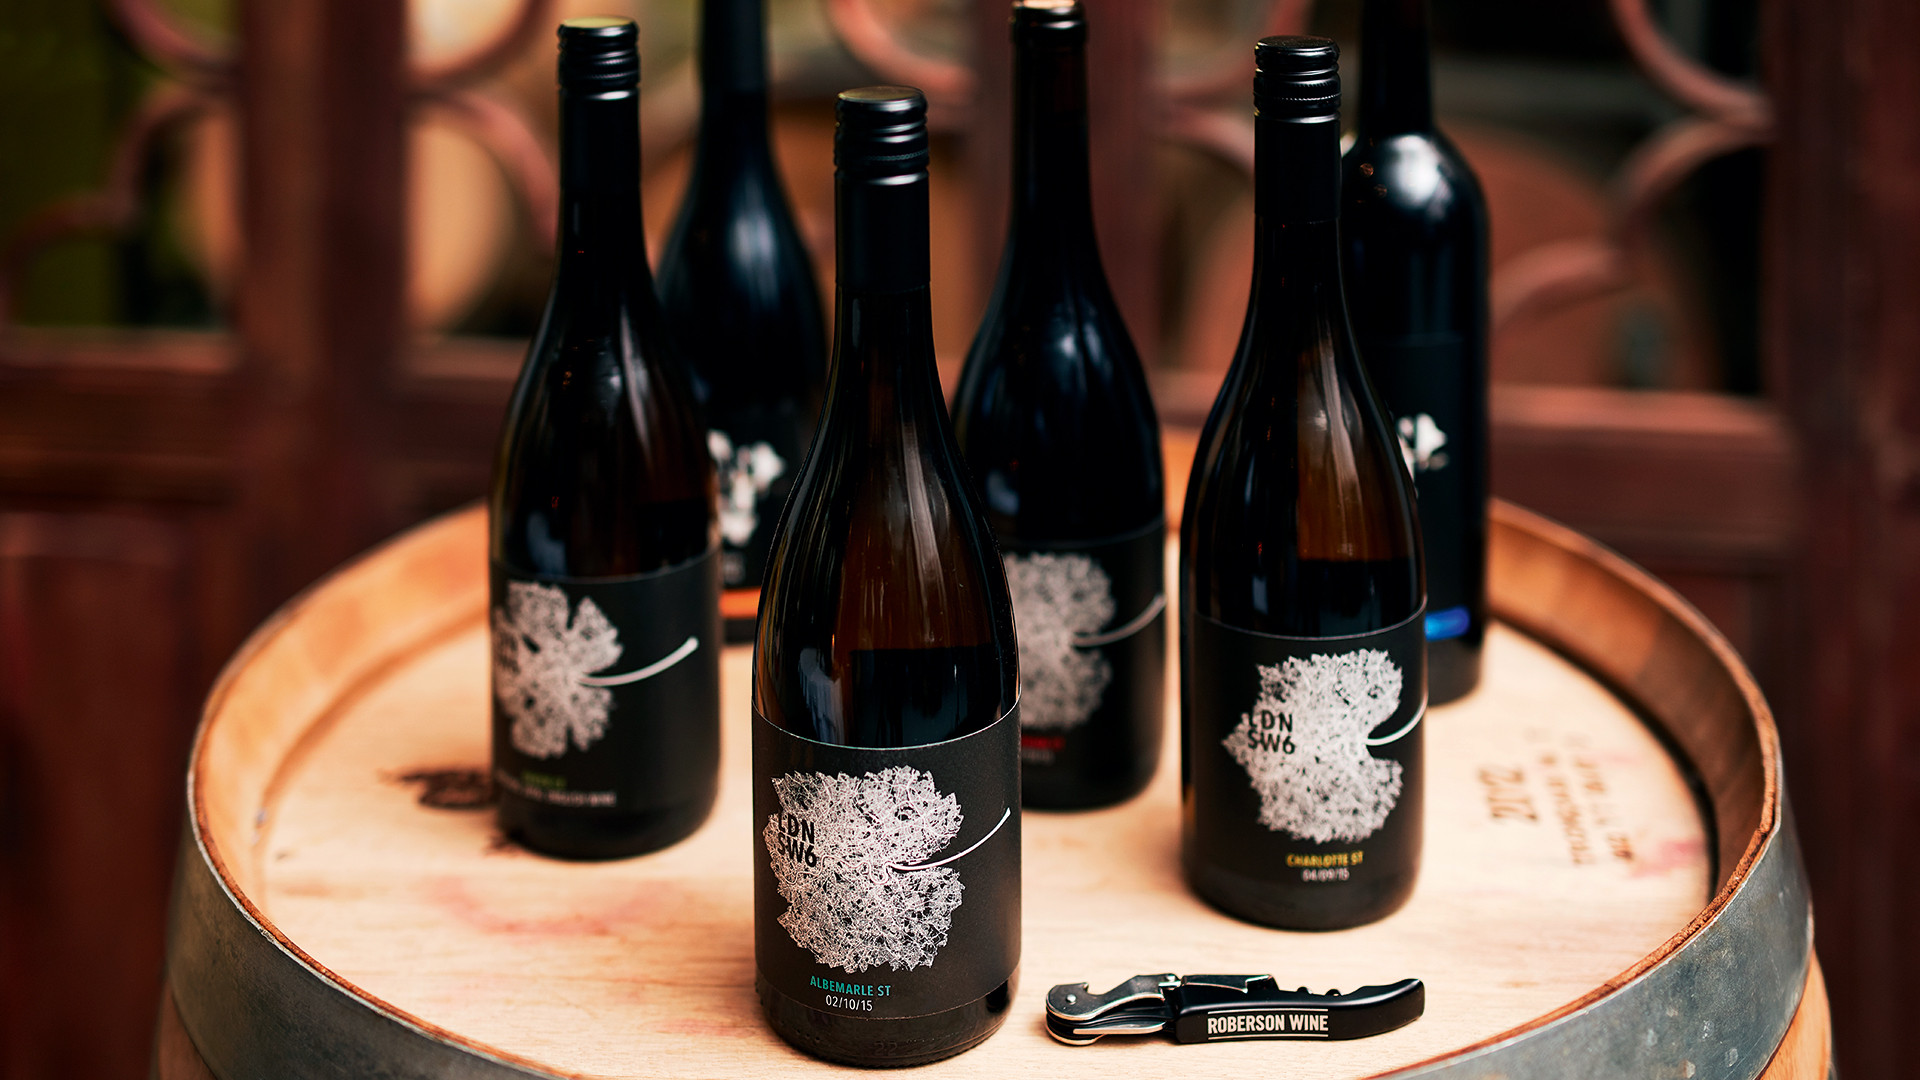 London Cru's multiple award winning wine-leaf label are designed by highly respected design agency The Partners